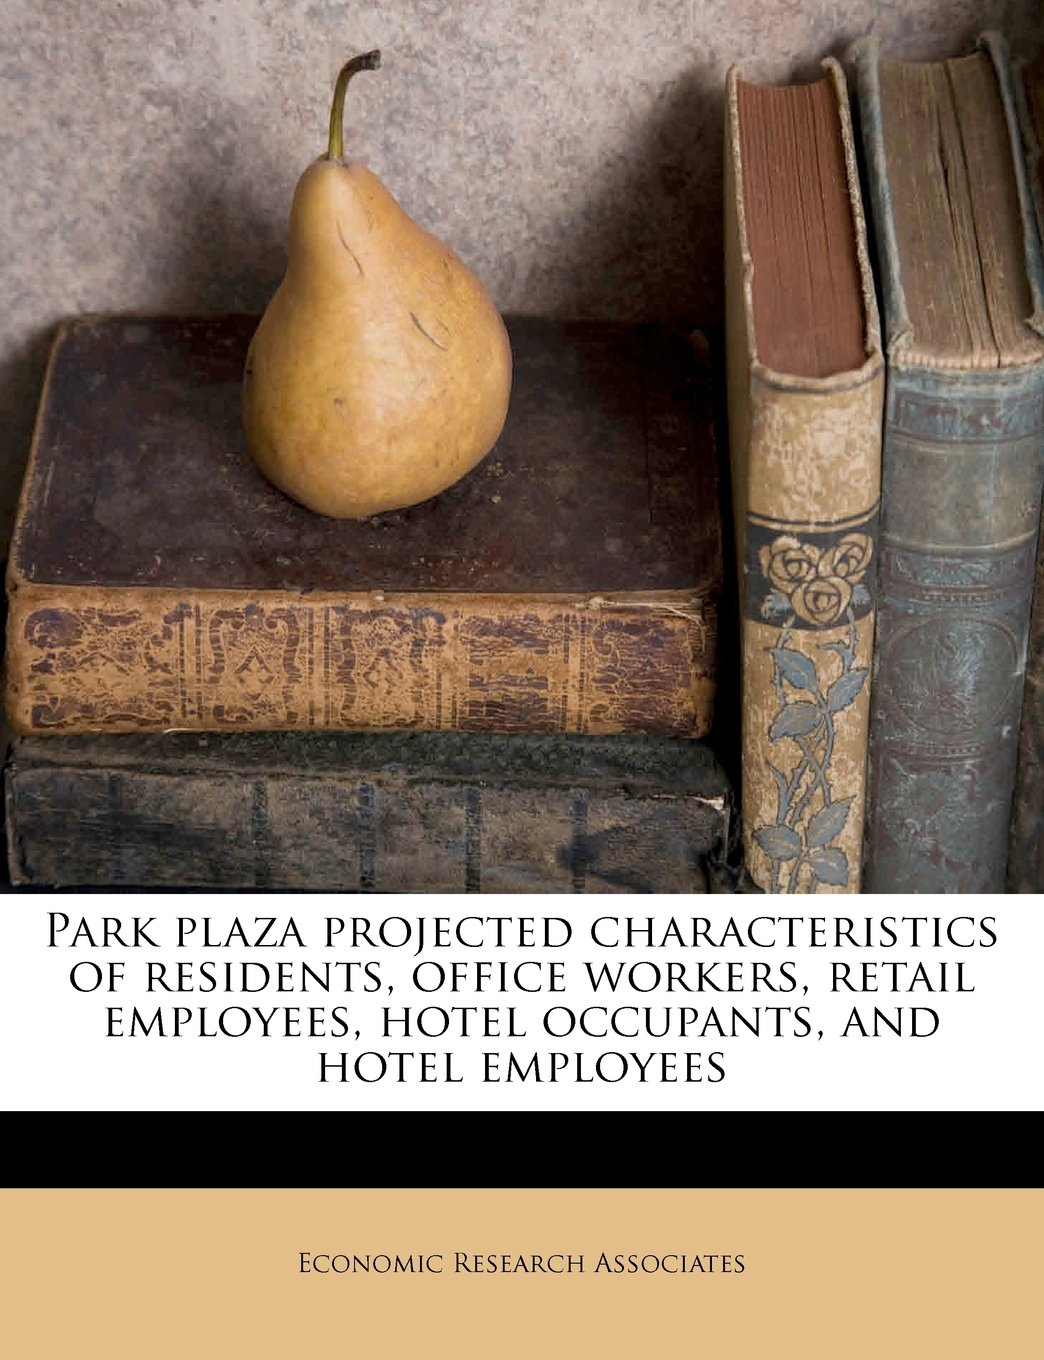 Park plaza projected characteristics of residents, office workers, retail employees, hotel occupants, and hotel employees PDF